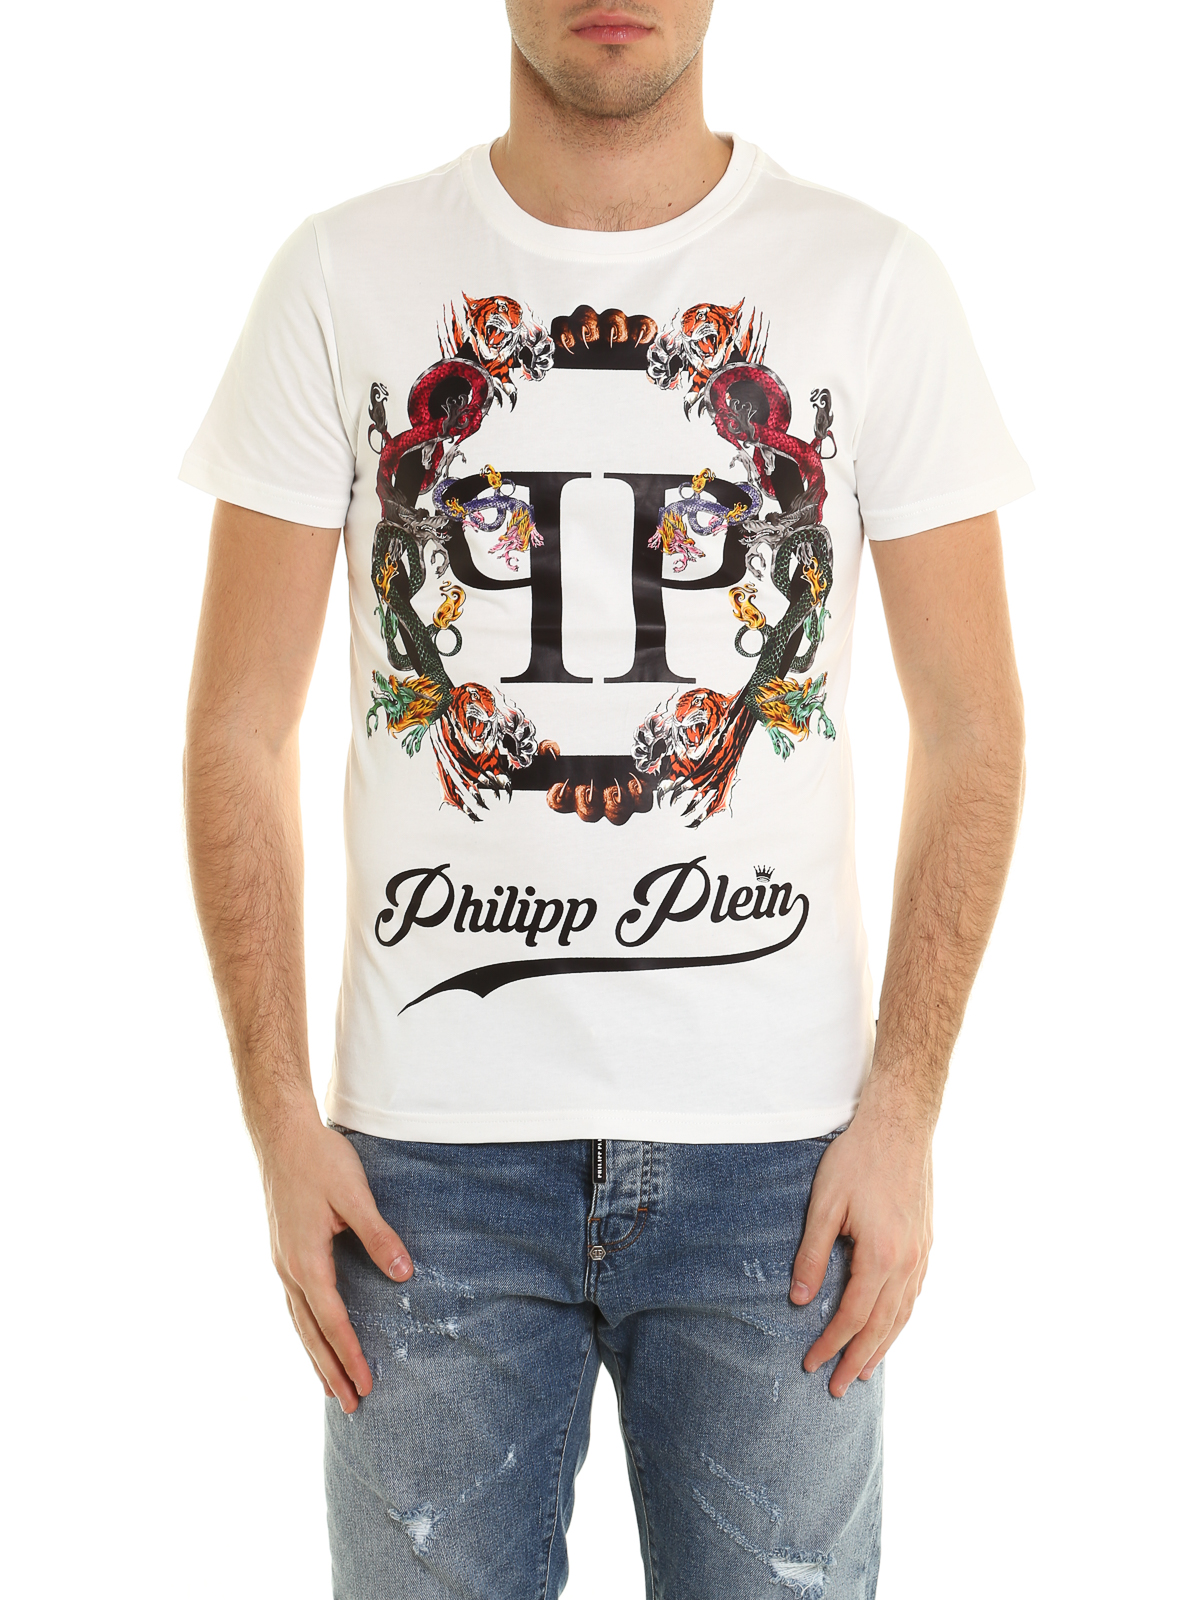 plein 39 s animals cotton tee by philipp plein t shirts ikrix. Black Bedroom Furniture Sets. Home Design Ideas